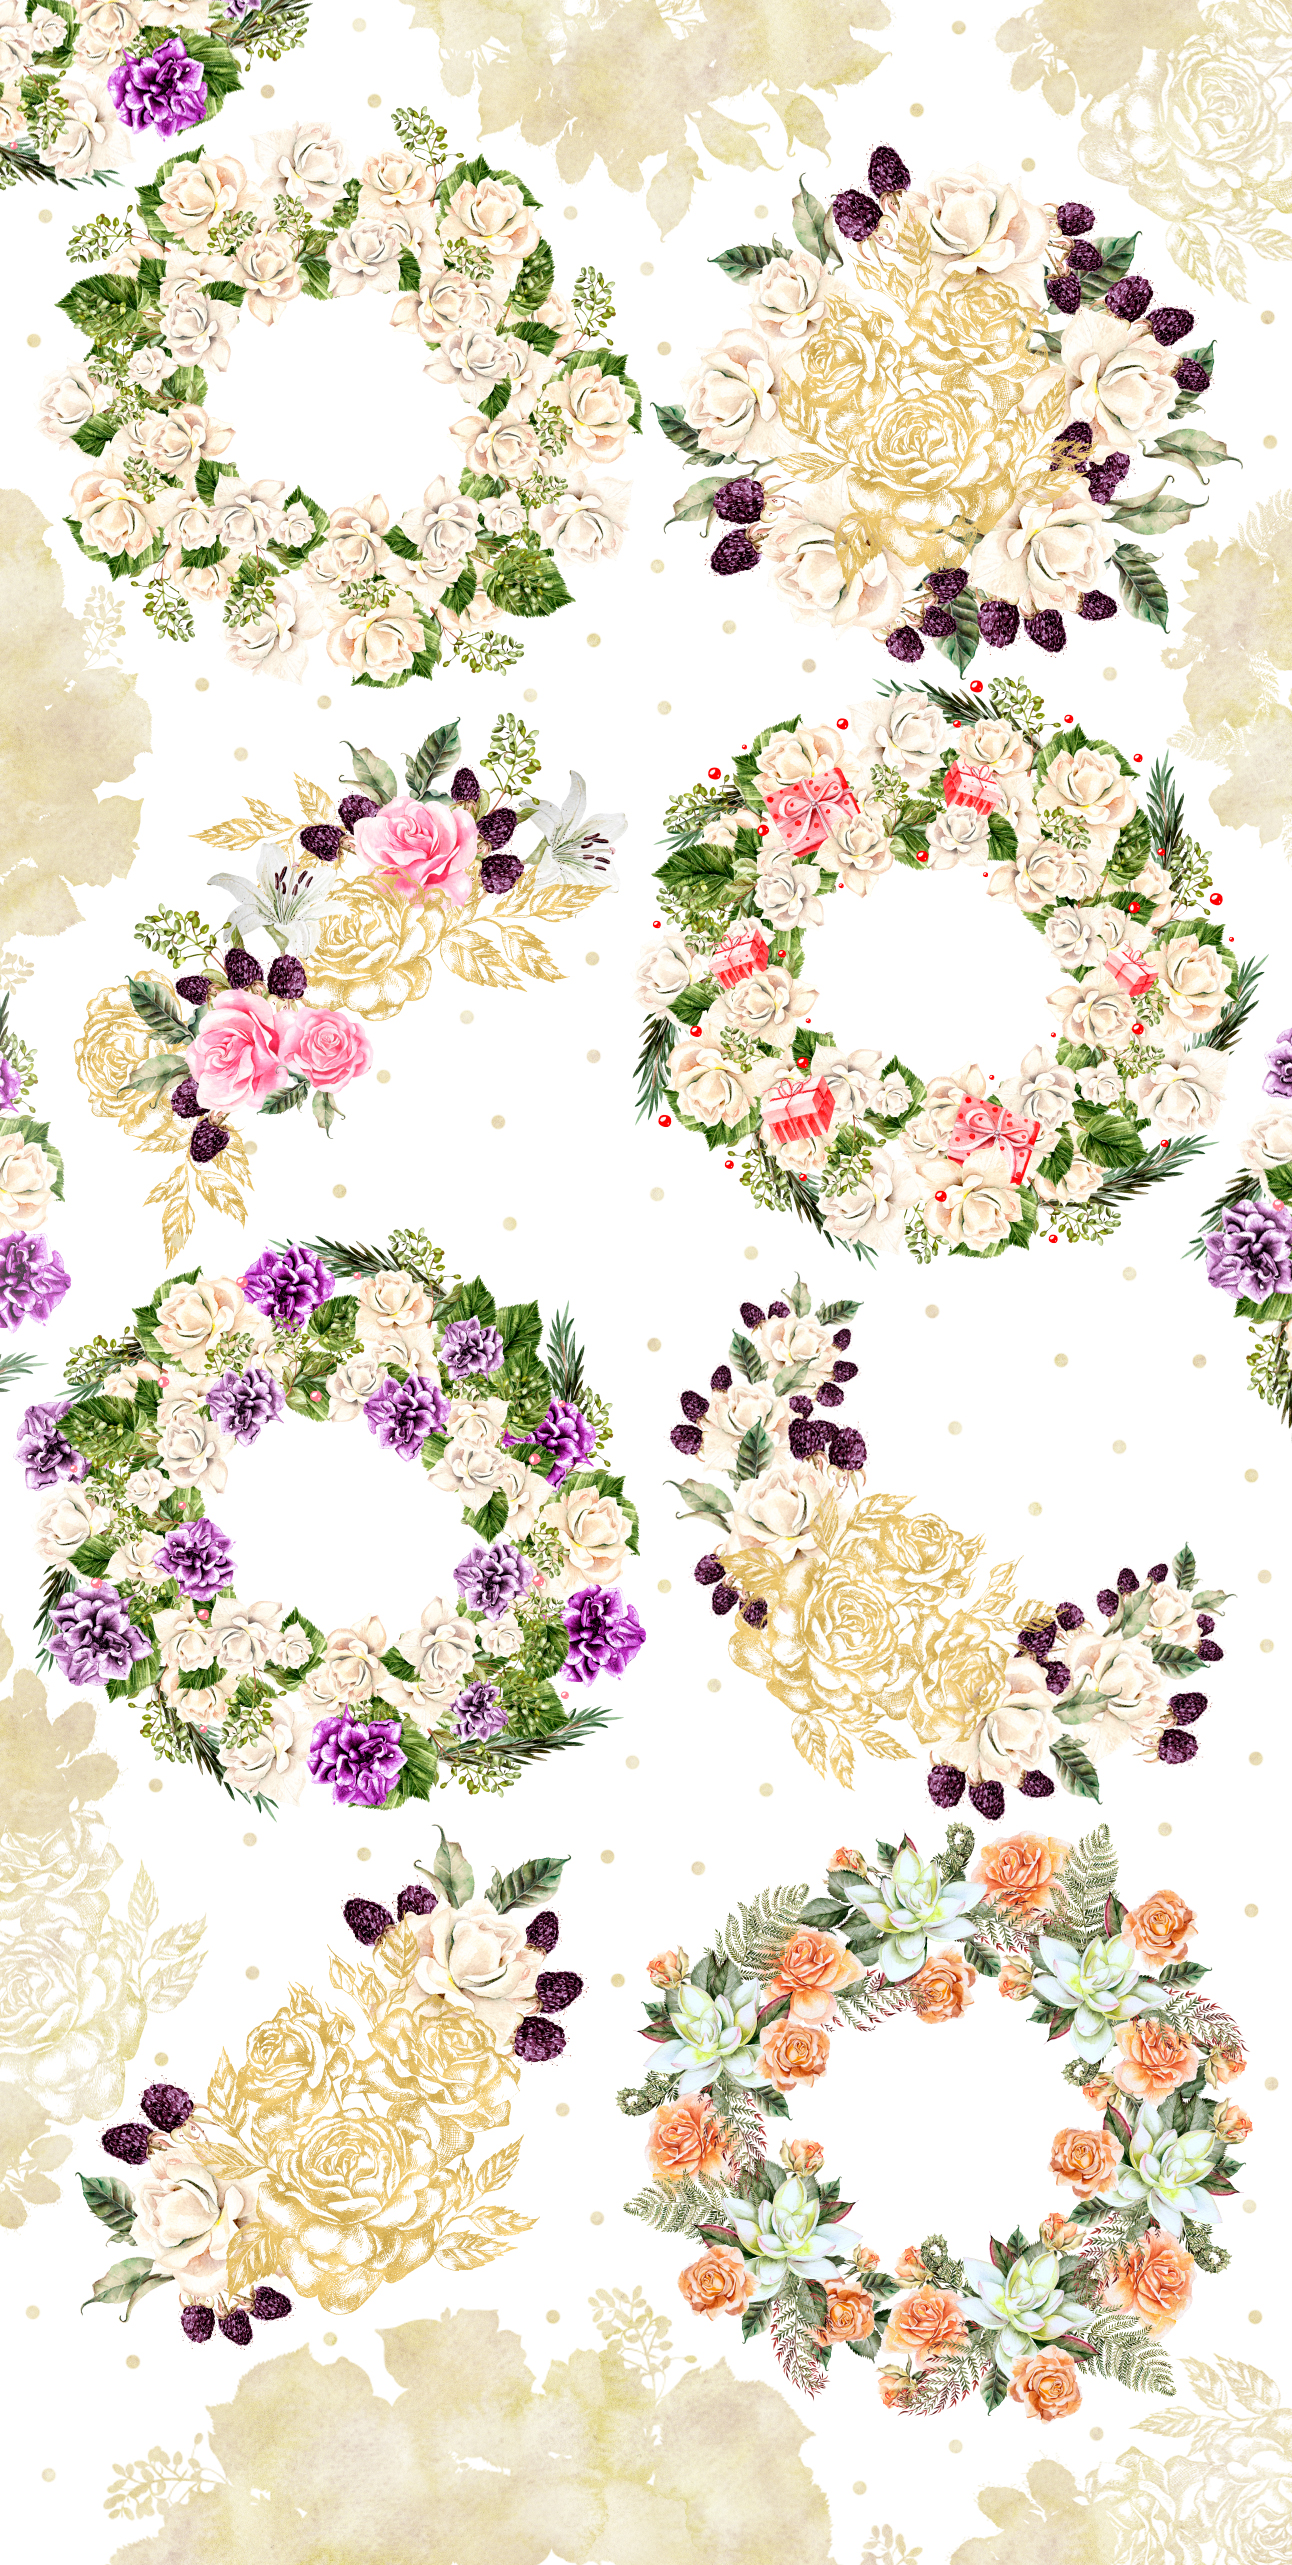 Hand Drawn Watercolor Wreath & Bouquets